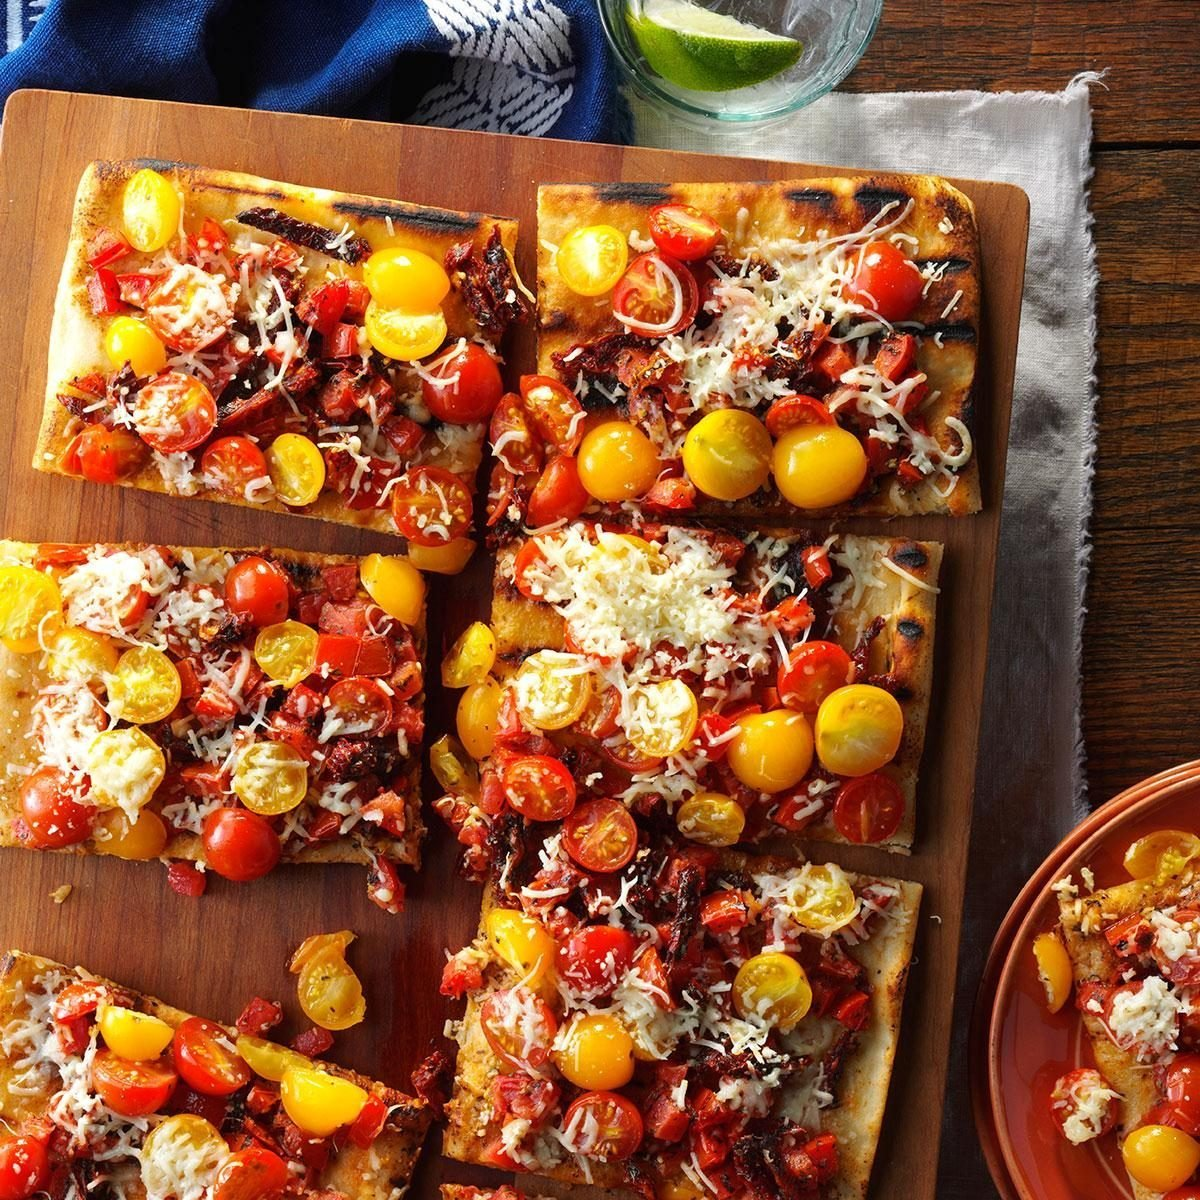 Appetizers Your Memorial Day Get-Together Needs